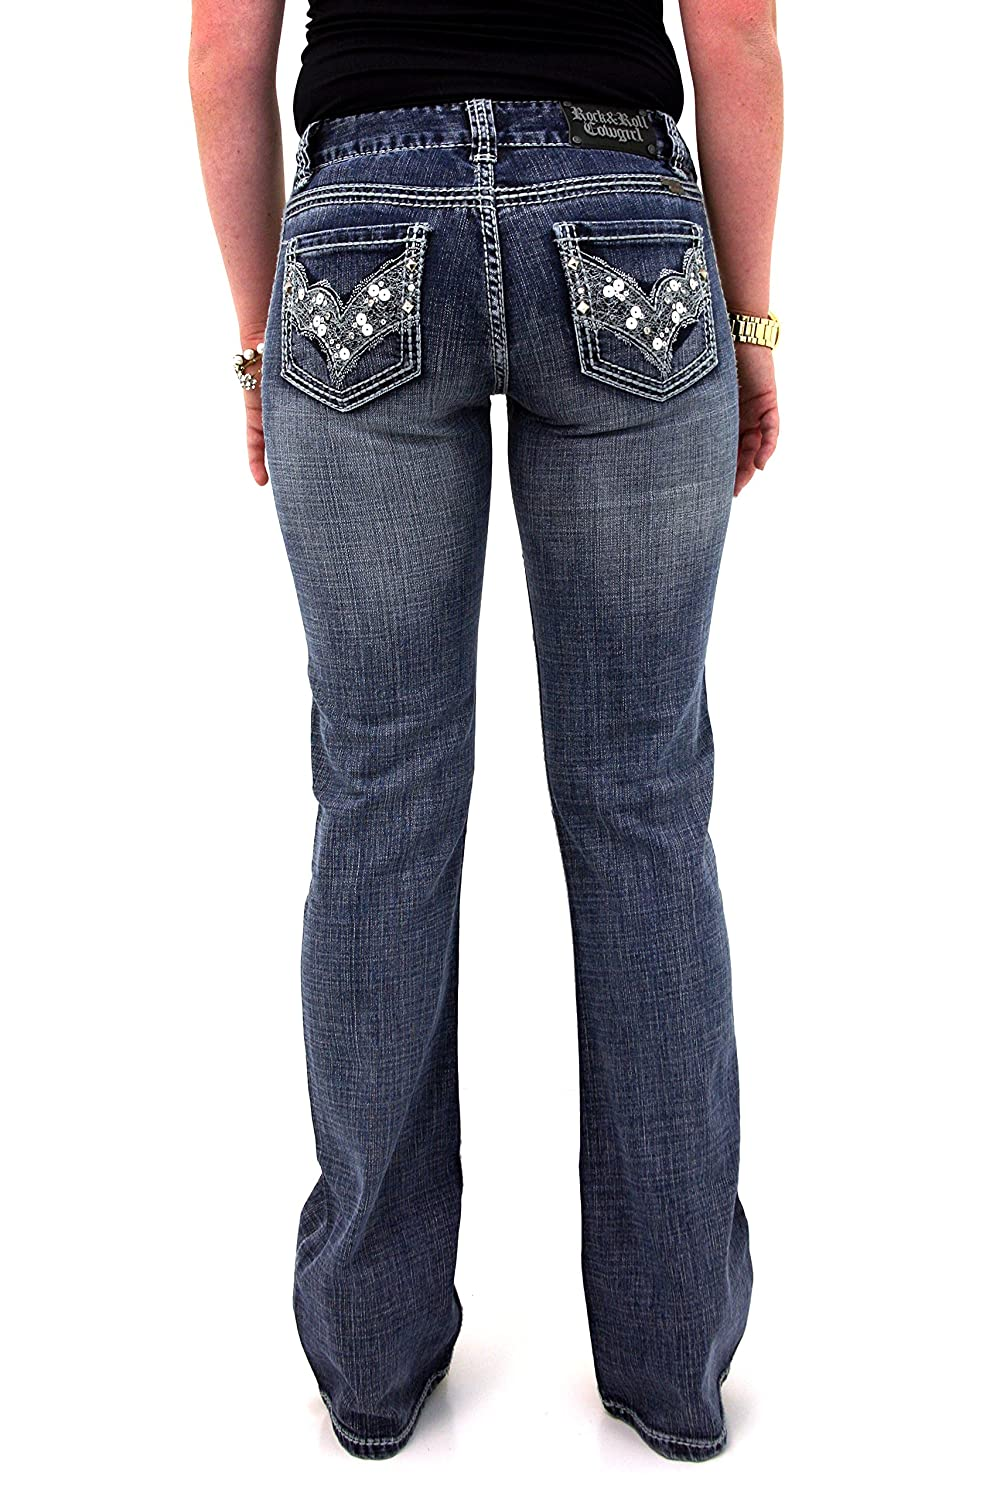 Rock and Roll Cowgirl W1-3694 Mid Rise Bootcut Denim